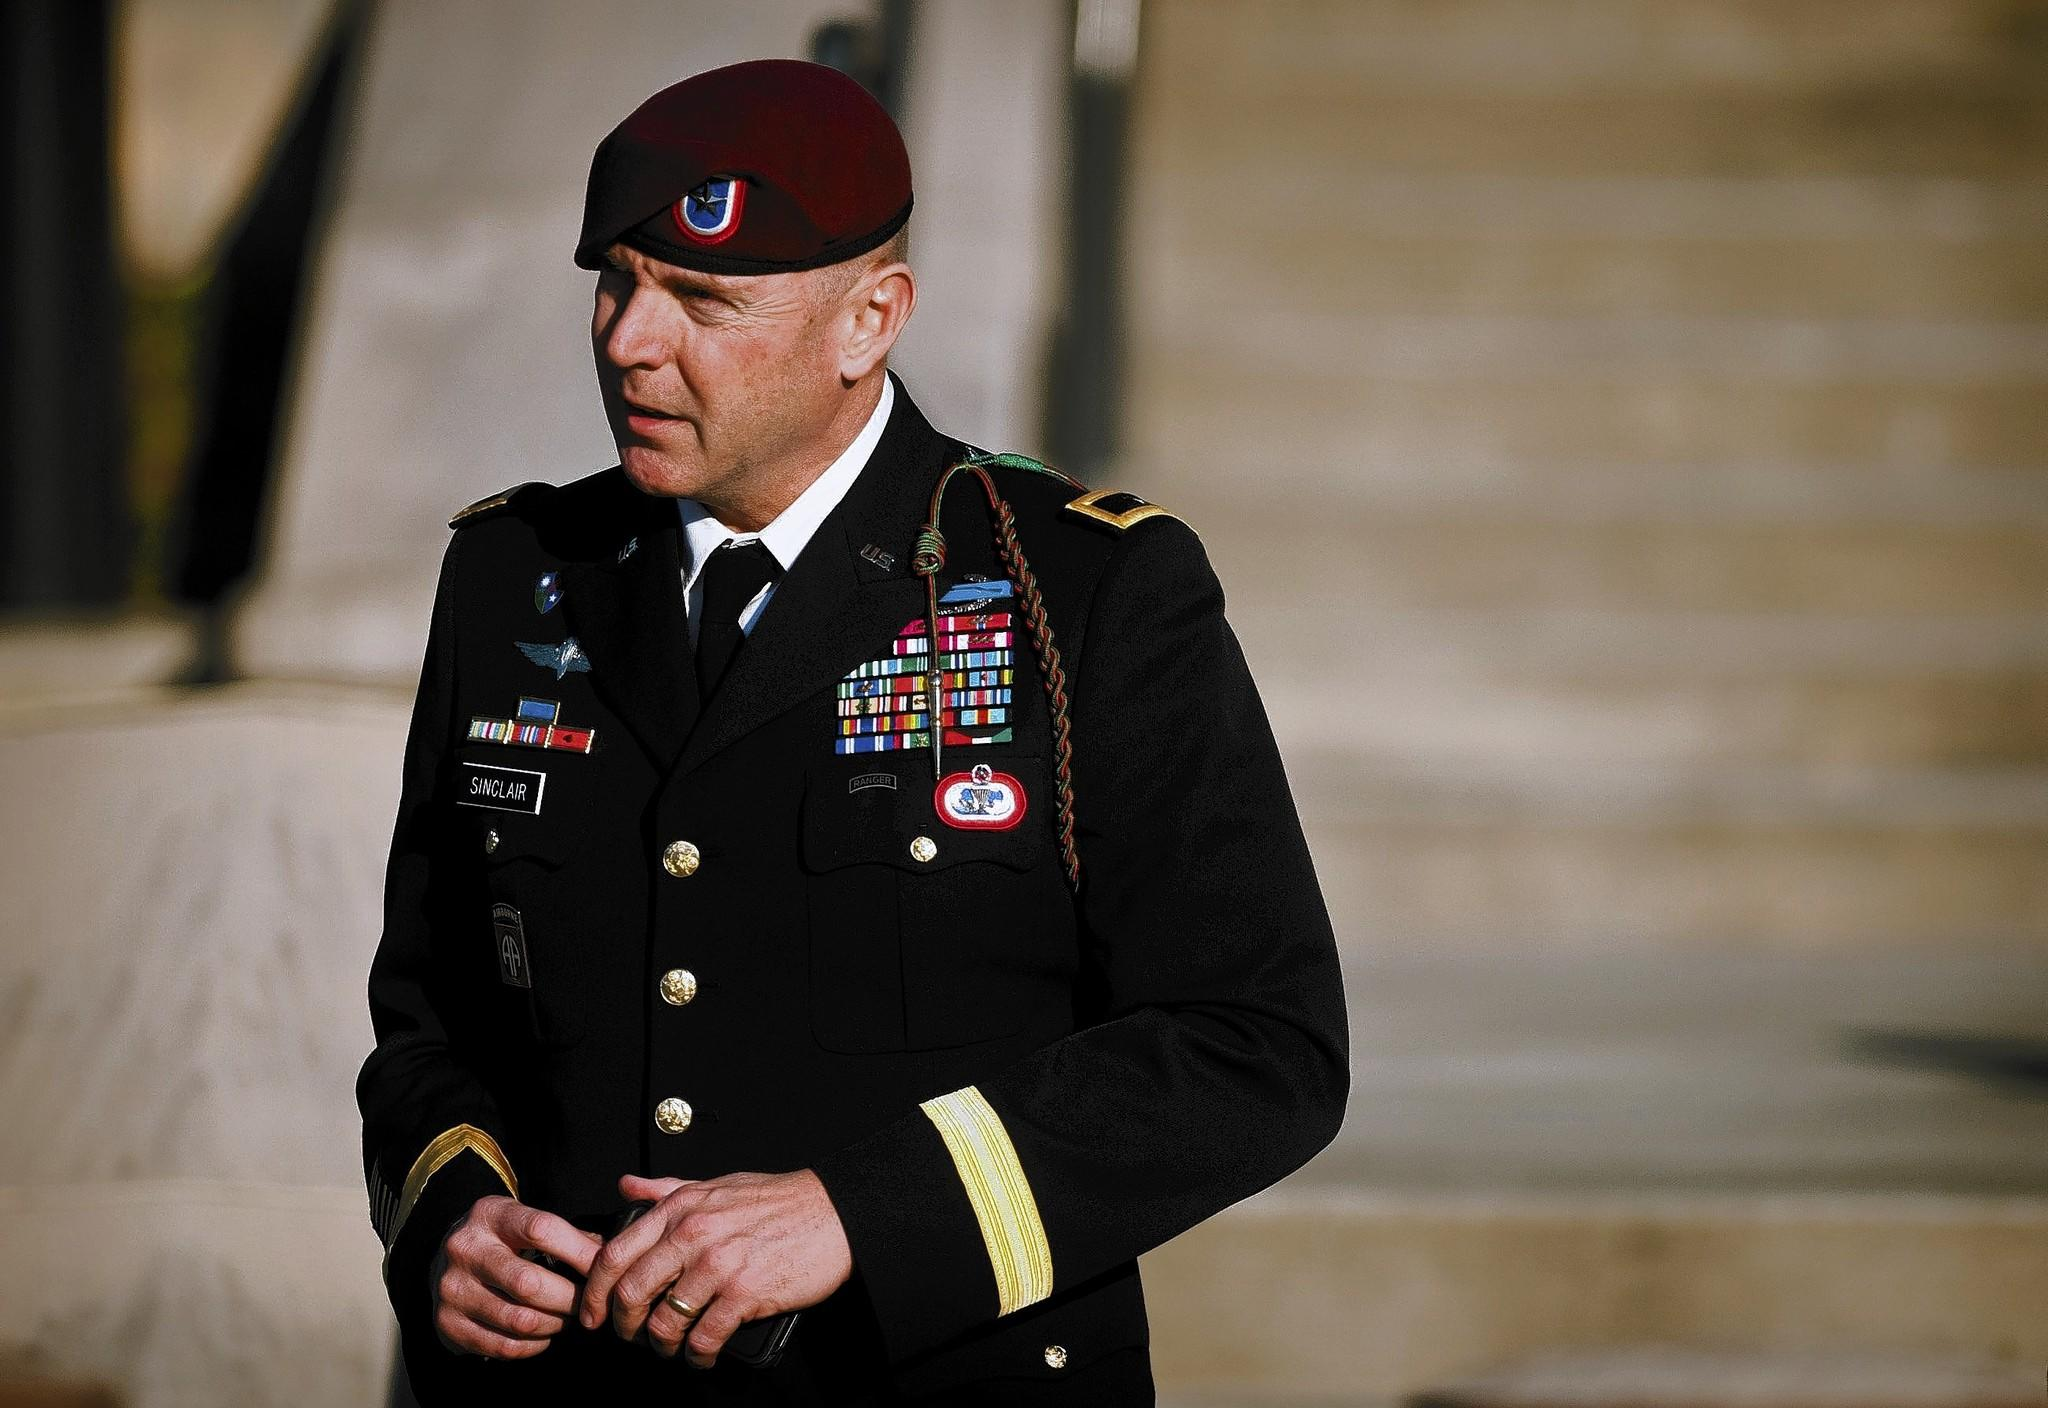 Army Brig Gen Jeffrey A Sinclair Has Been Accused Of Ually Aulting